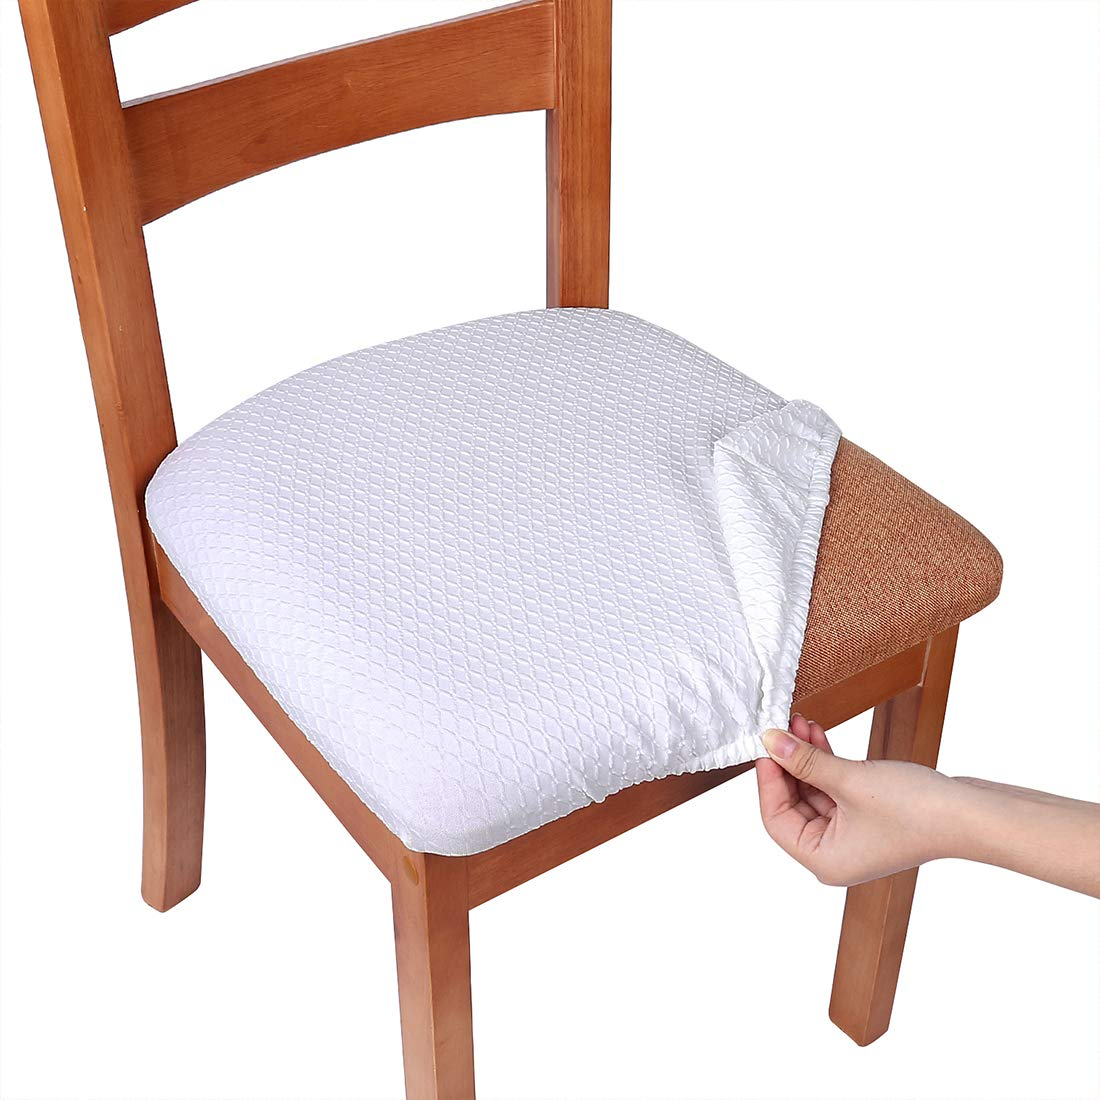 Plastic Dining Room Chair Covers: Vinyl Dining Room Chair Covers